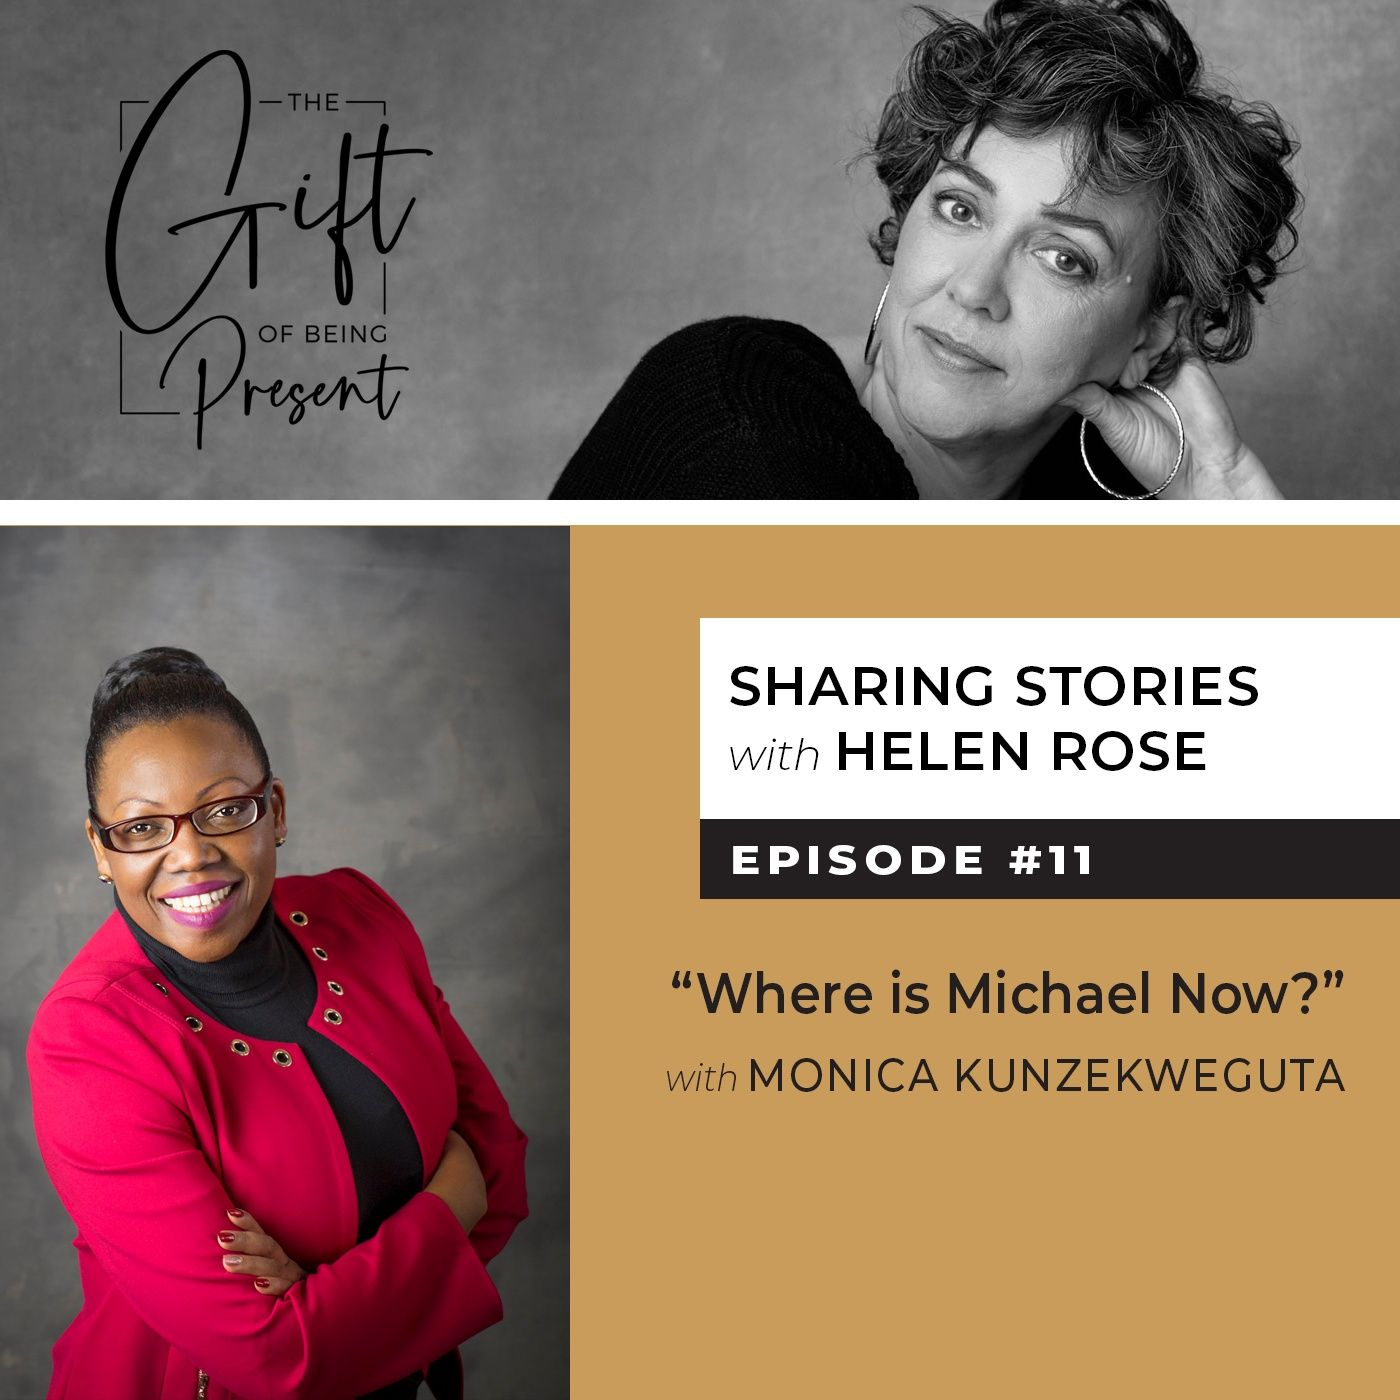 """Where is Michael Now?"" with Monica Kunzekweguta - Episode #11"